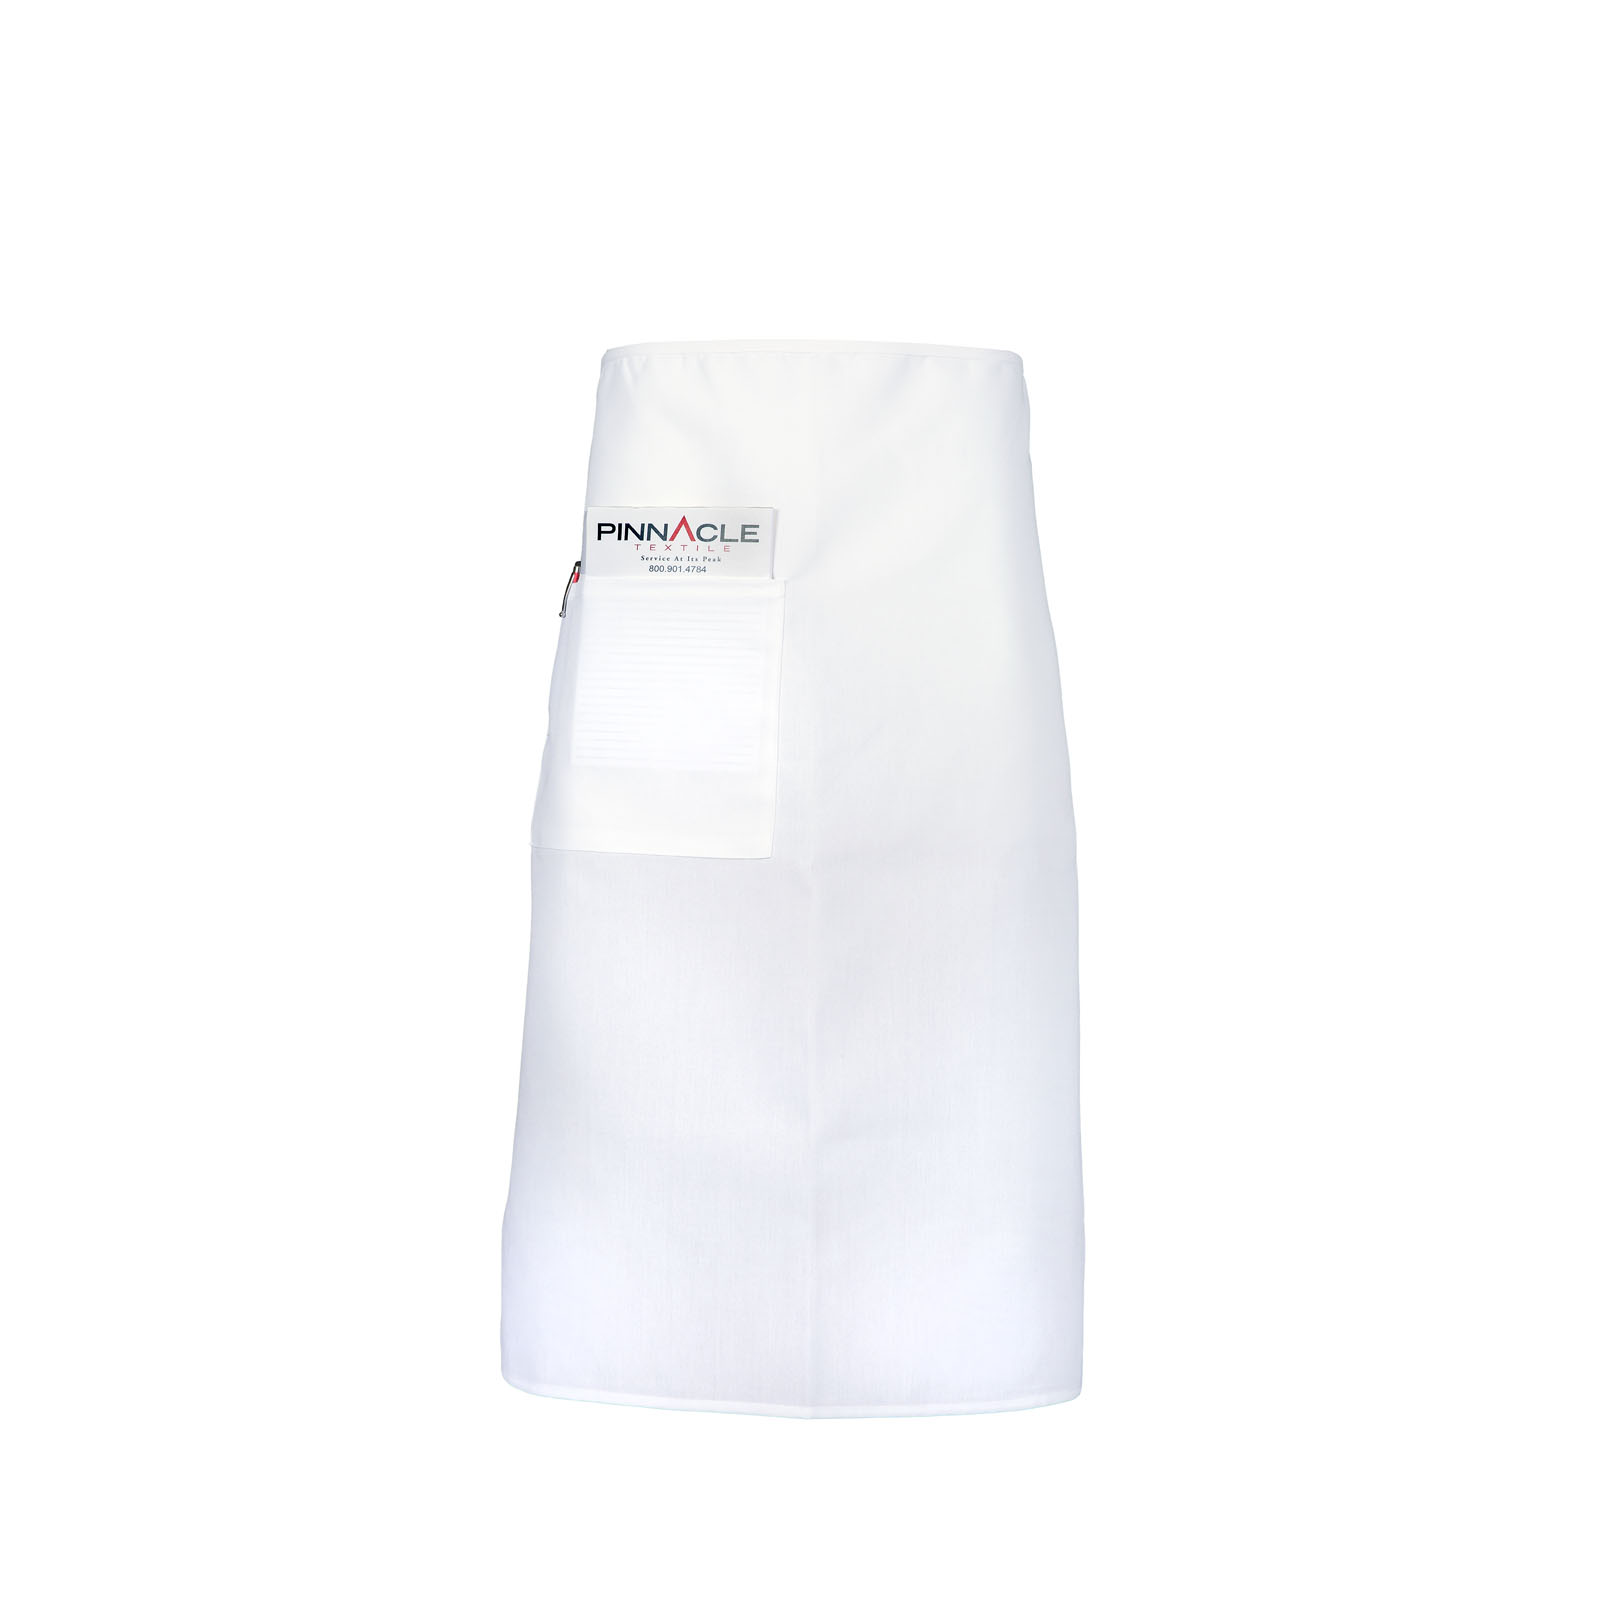 Full Bistro Apron White, One 9x9 Pocket - A2006-